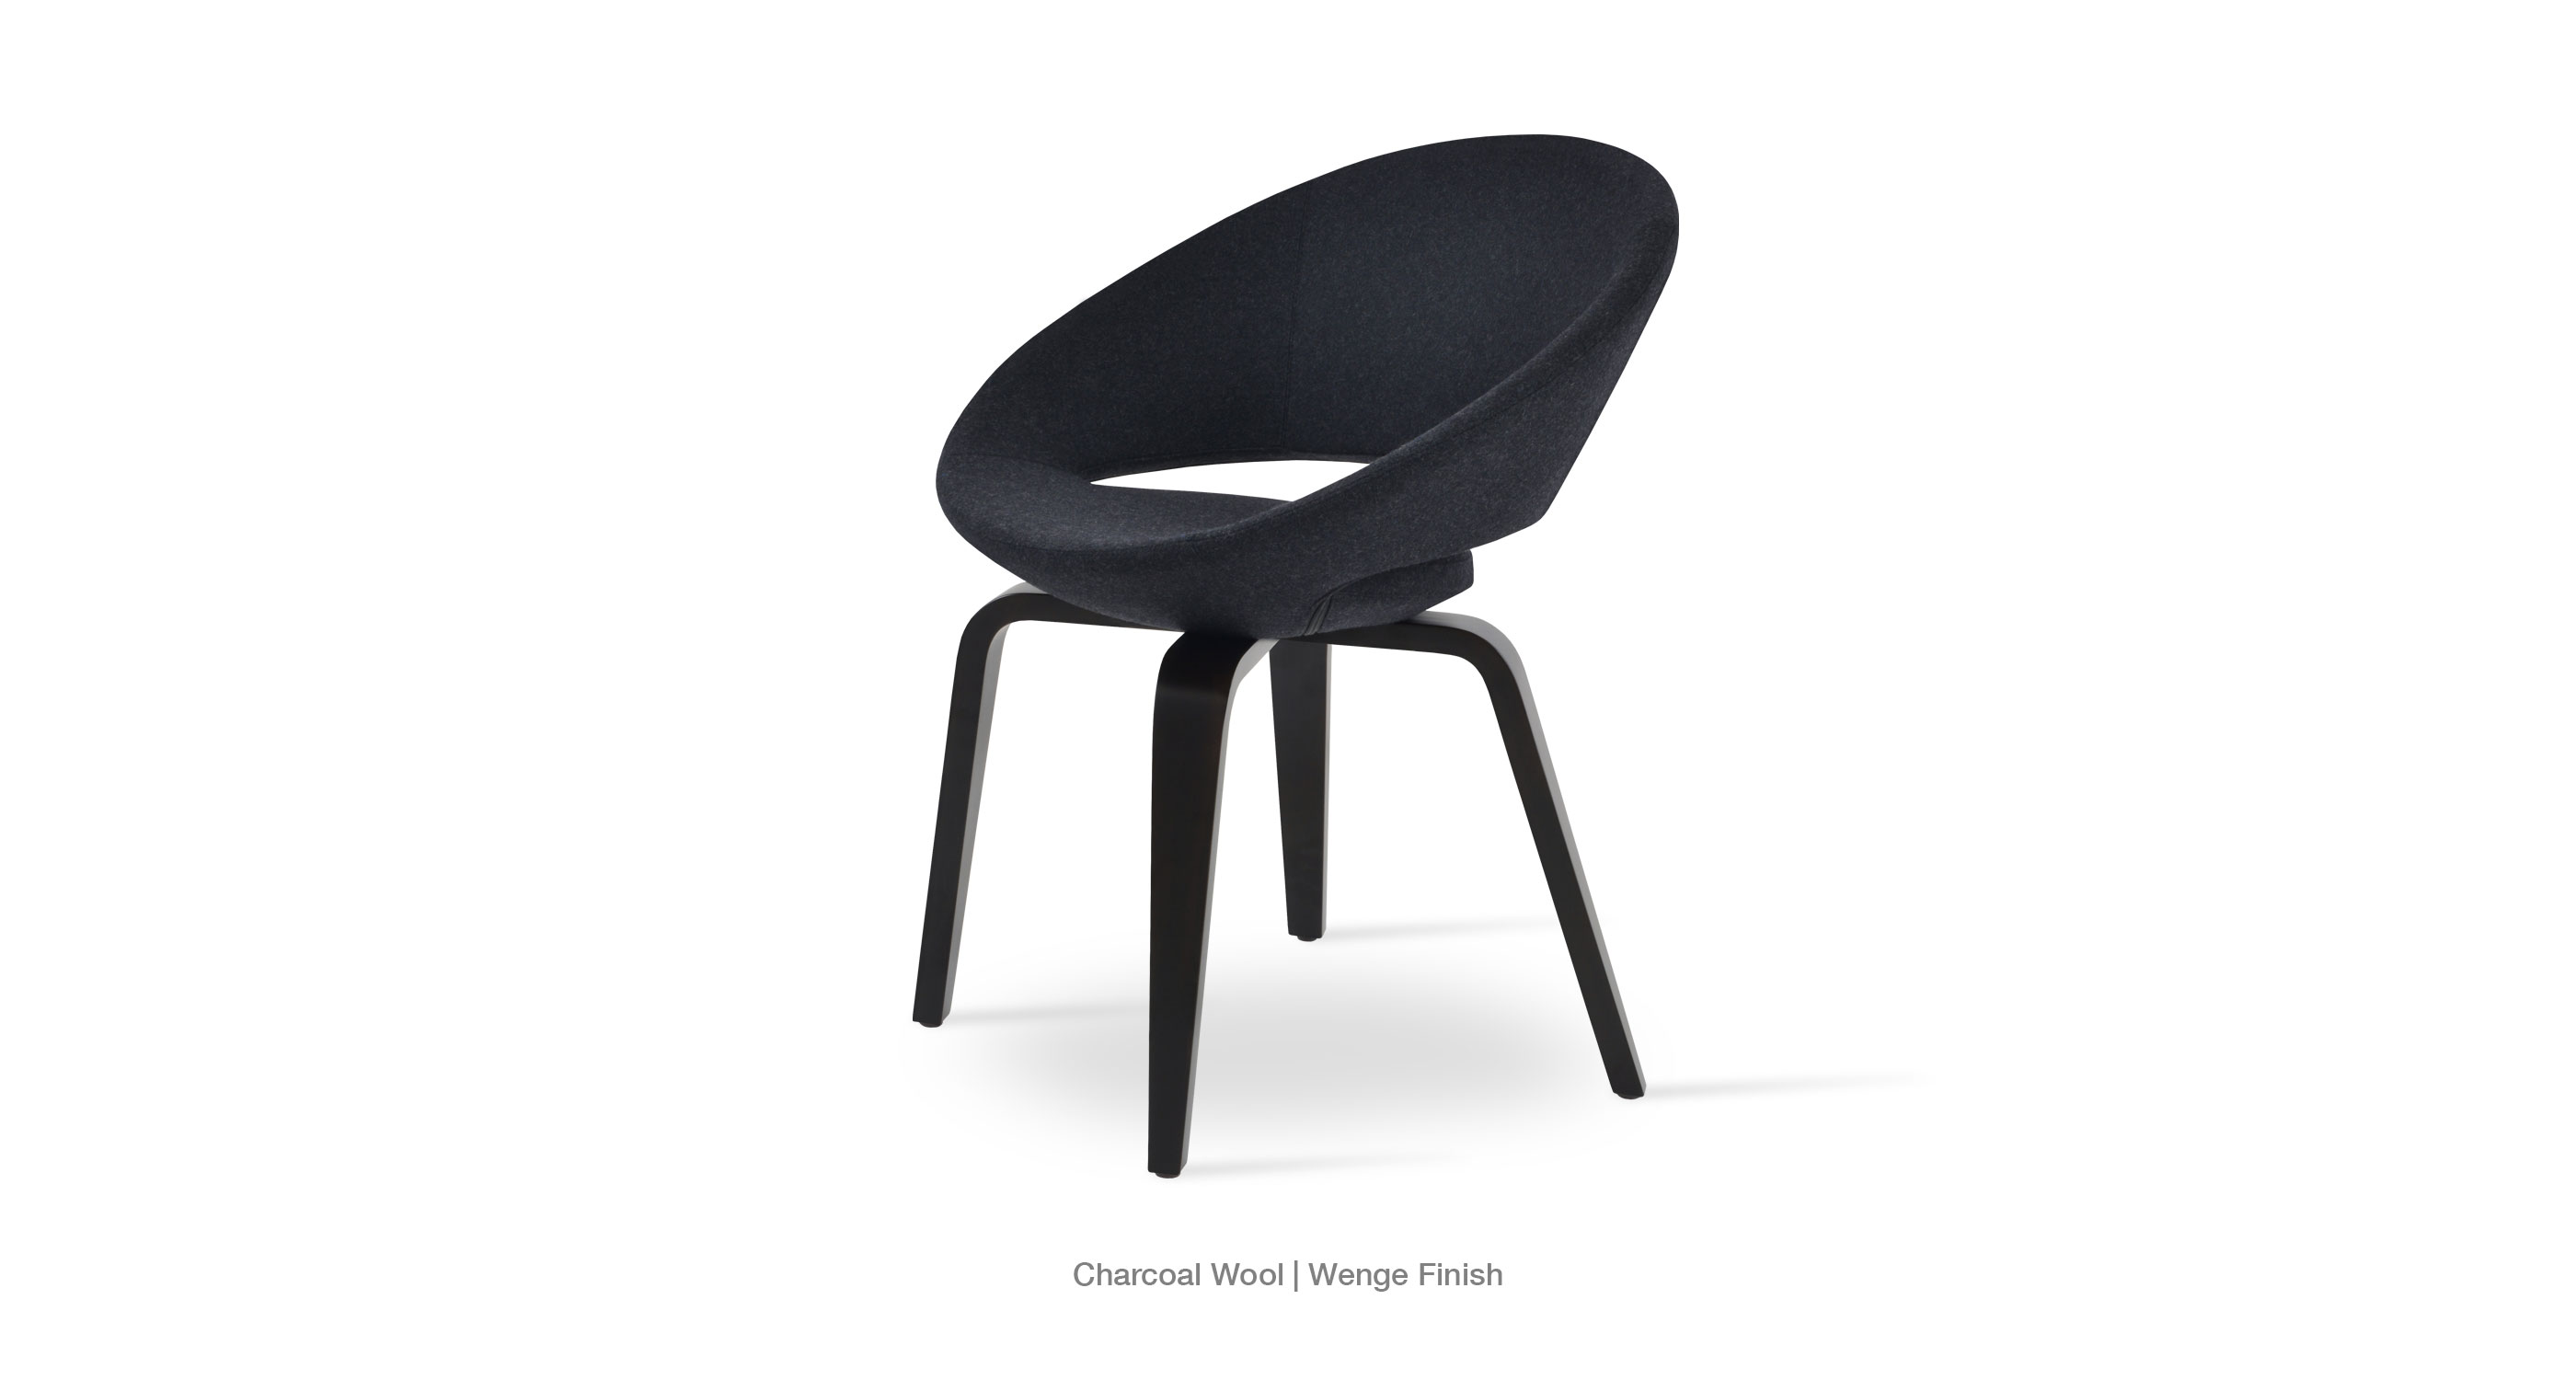 Crescent Plywood Charcoal Wool